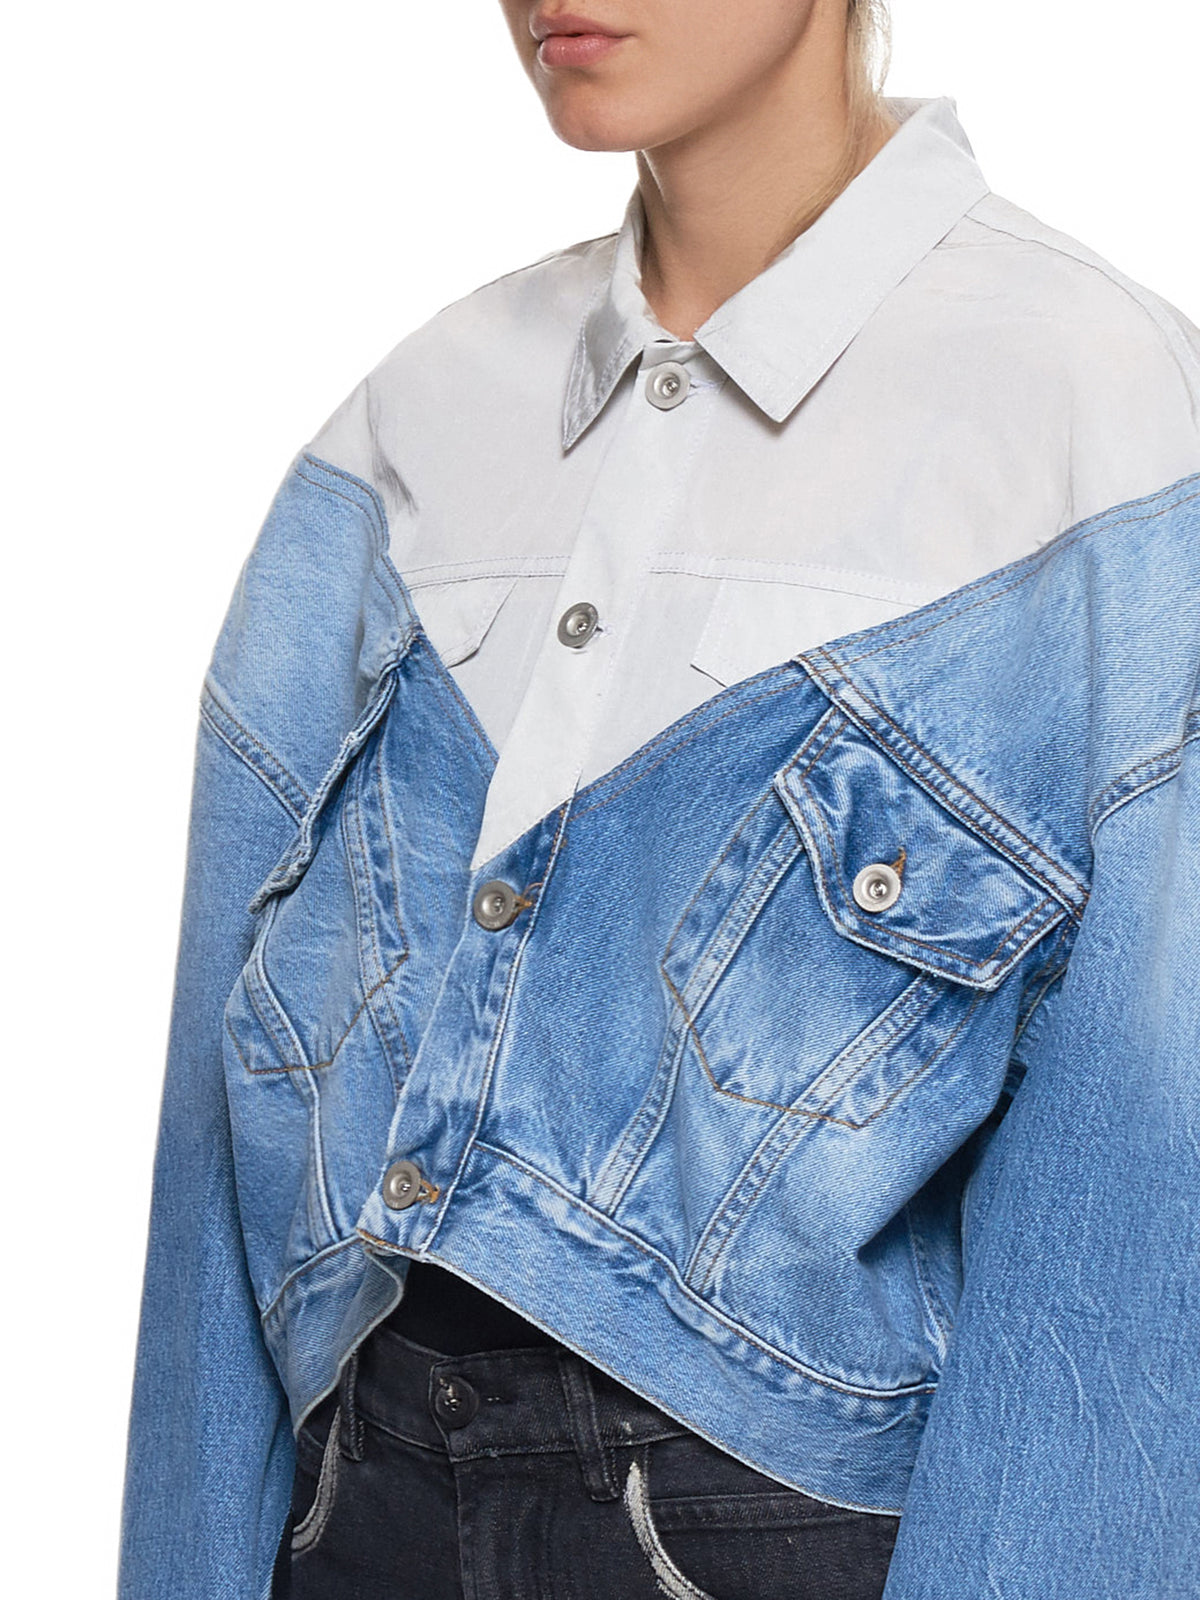 Hybrid Chop Jacket (UWYE005-LIGHT-BLUE)